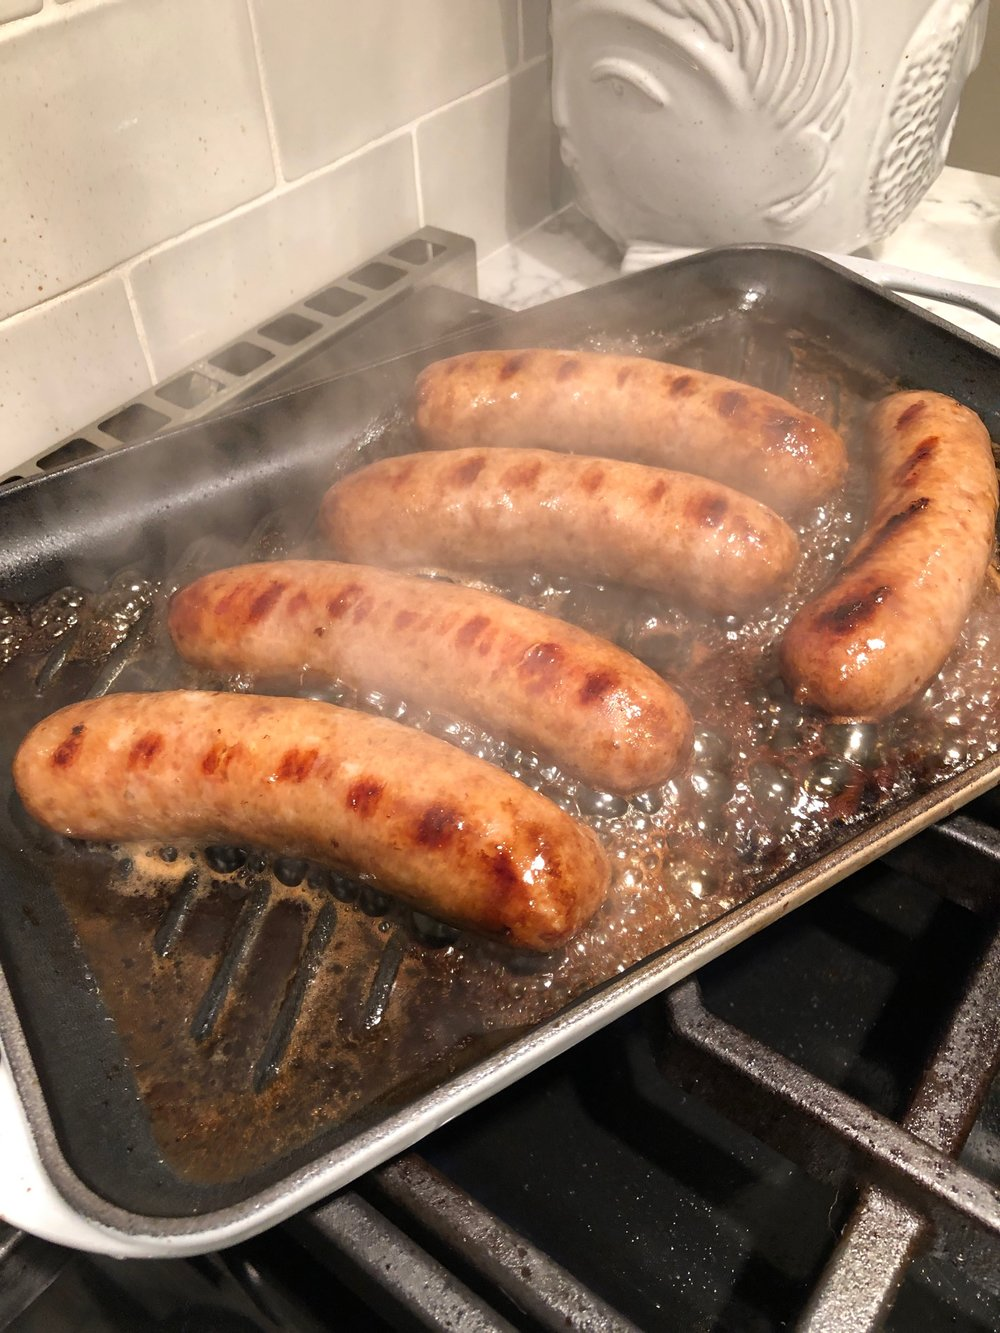 Browning up those Brats!